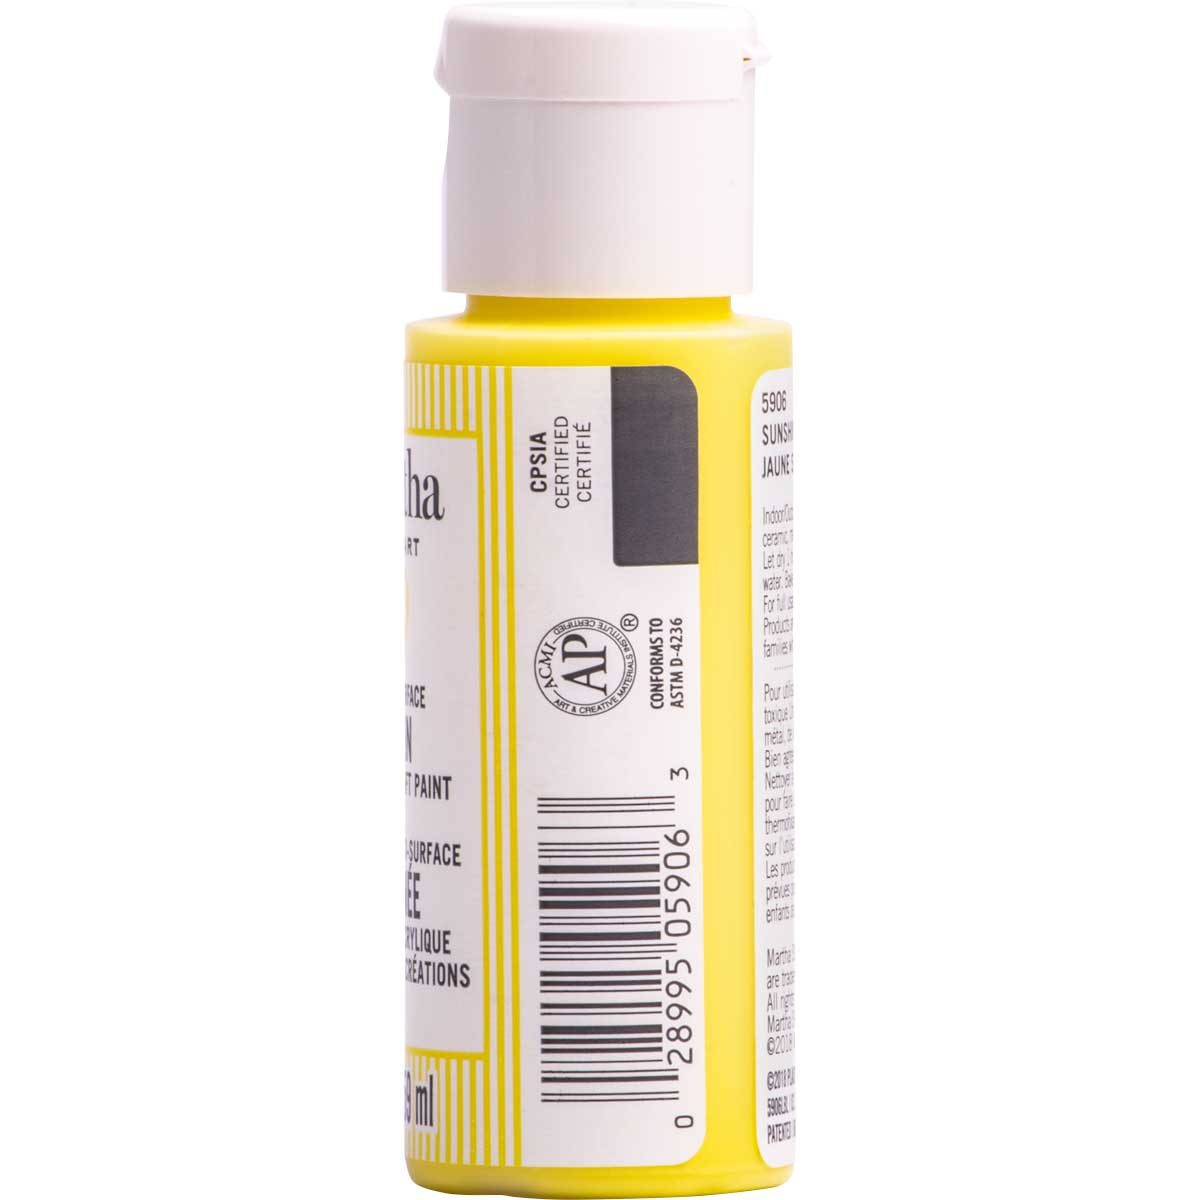 Martha Stewart ® Multi-Surface Satin Acrylic Craft Paint CPSIA - Sunshine Yellow, 2 oz. - 5906